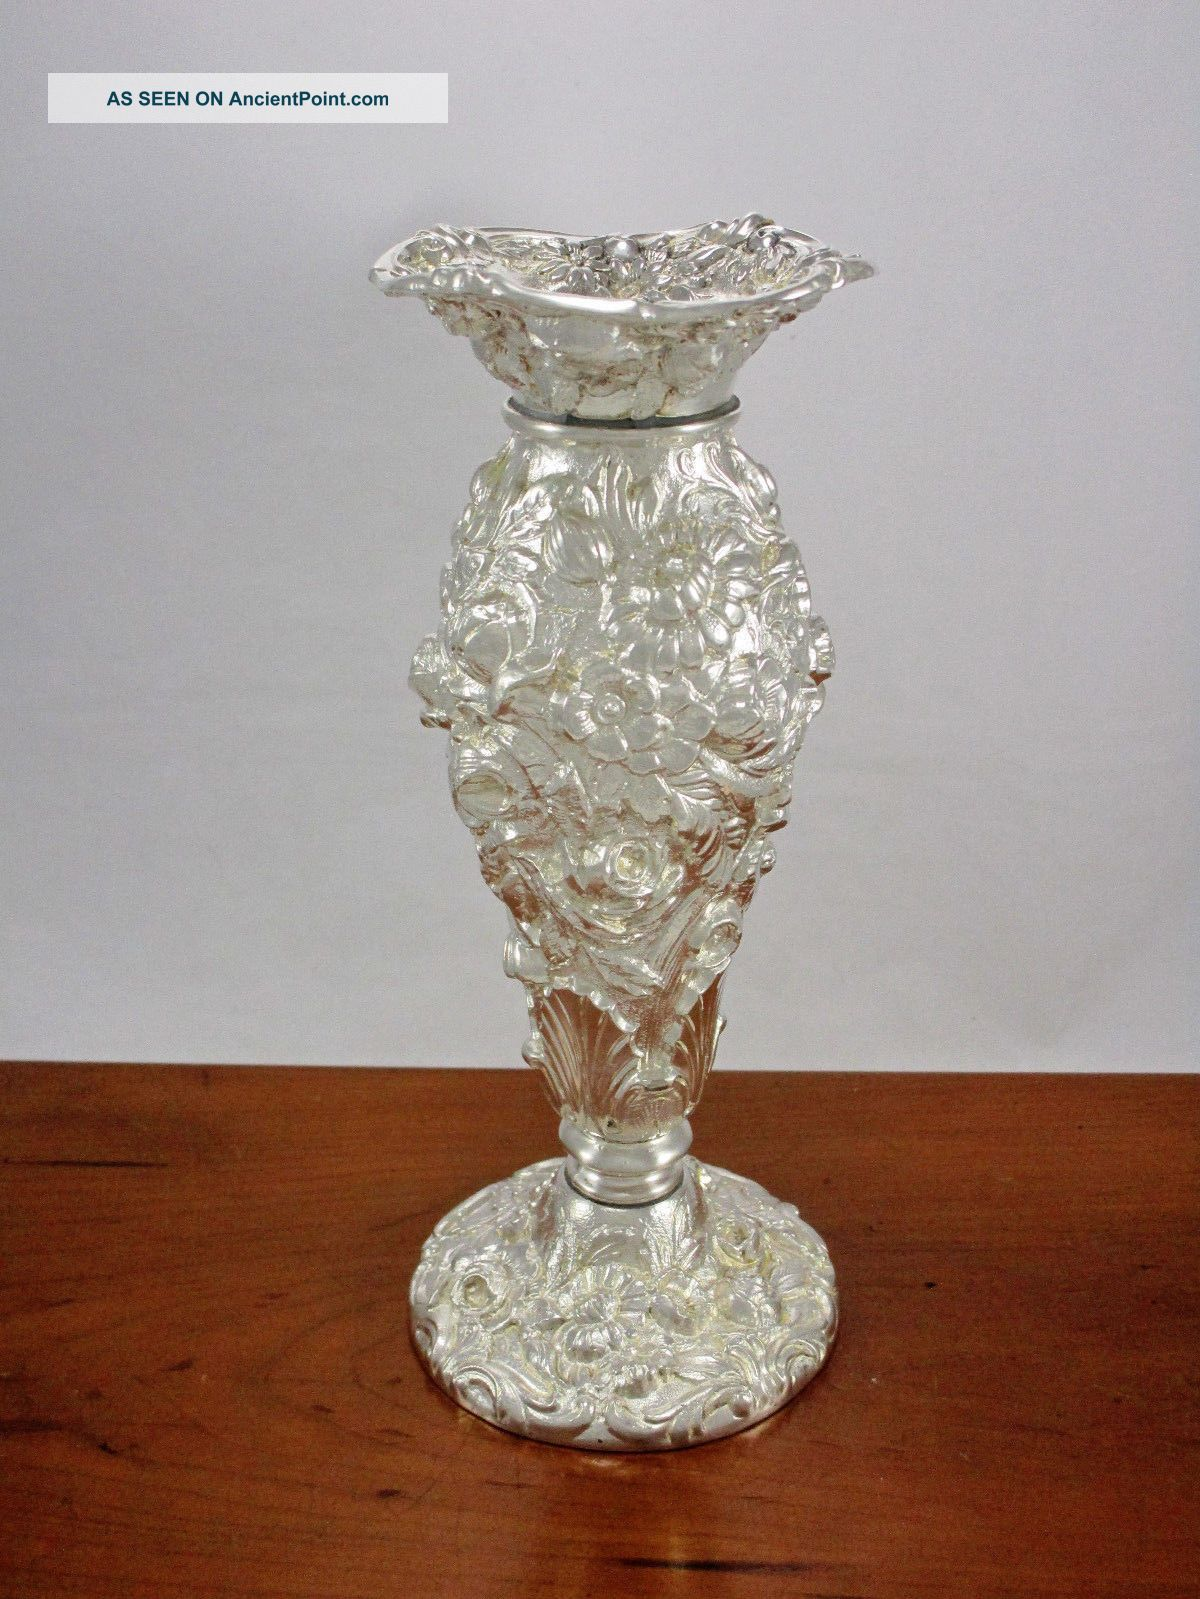 Antique Vintage Weidlich Bros Silver Plate Heavy Ornate Repousse Floral Vase Other Antique Silverplate photo